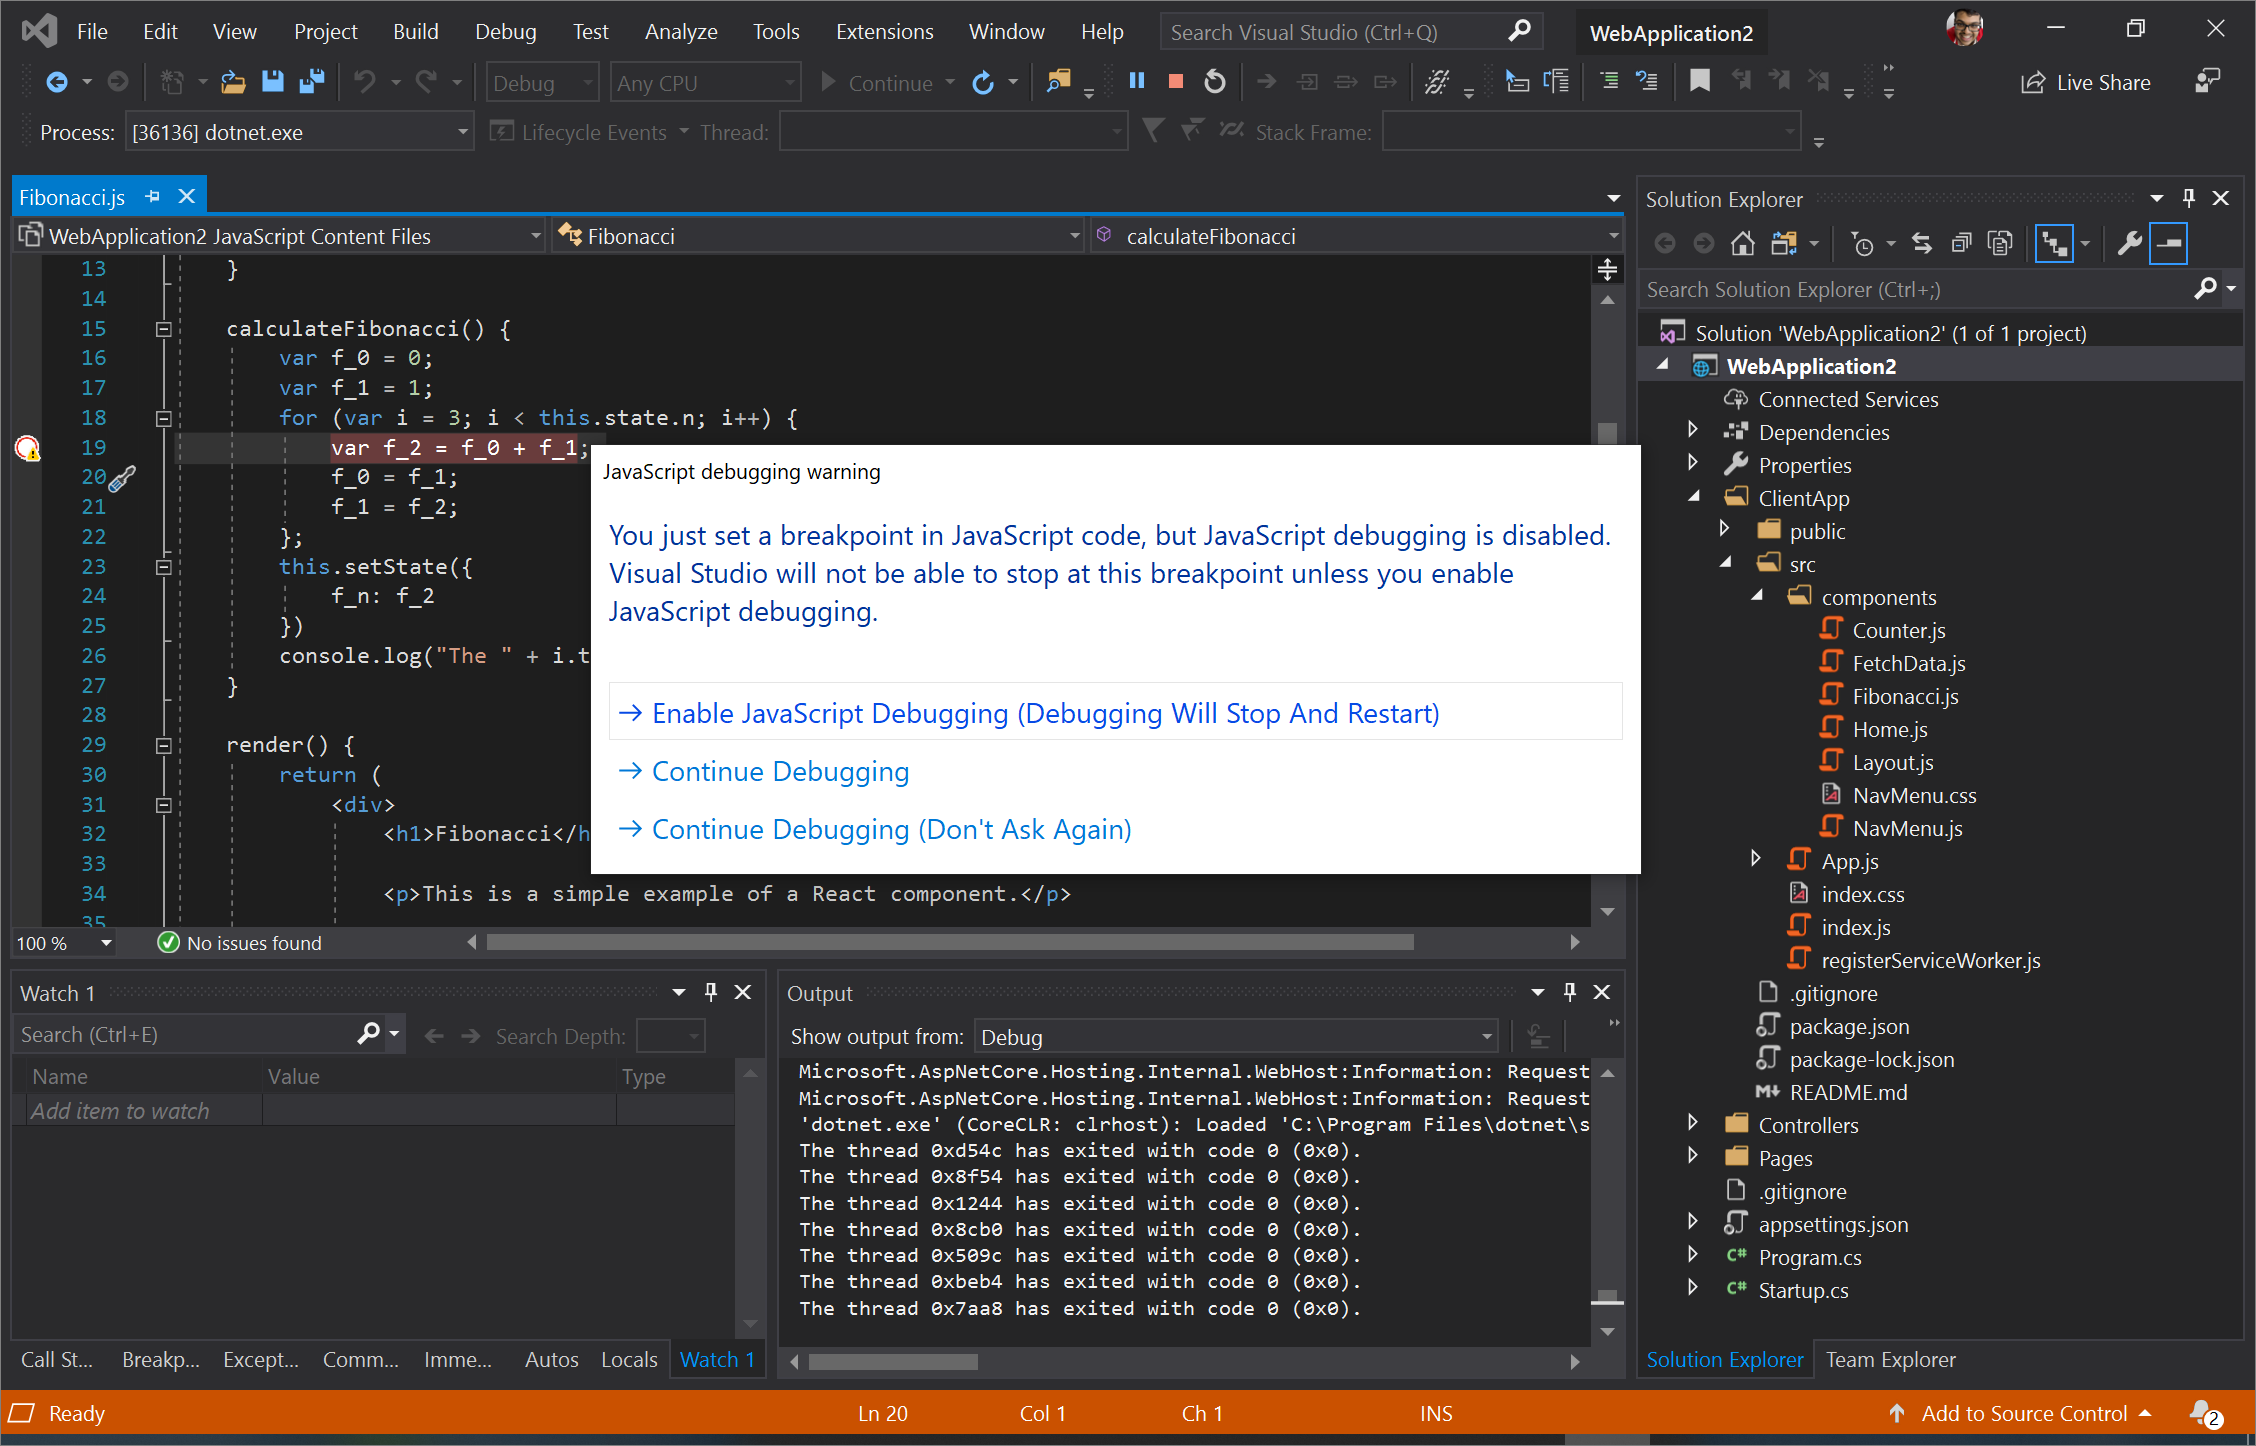 Screenshot of Visual Studio asking if you want to enable JavaScript debugging